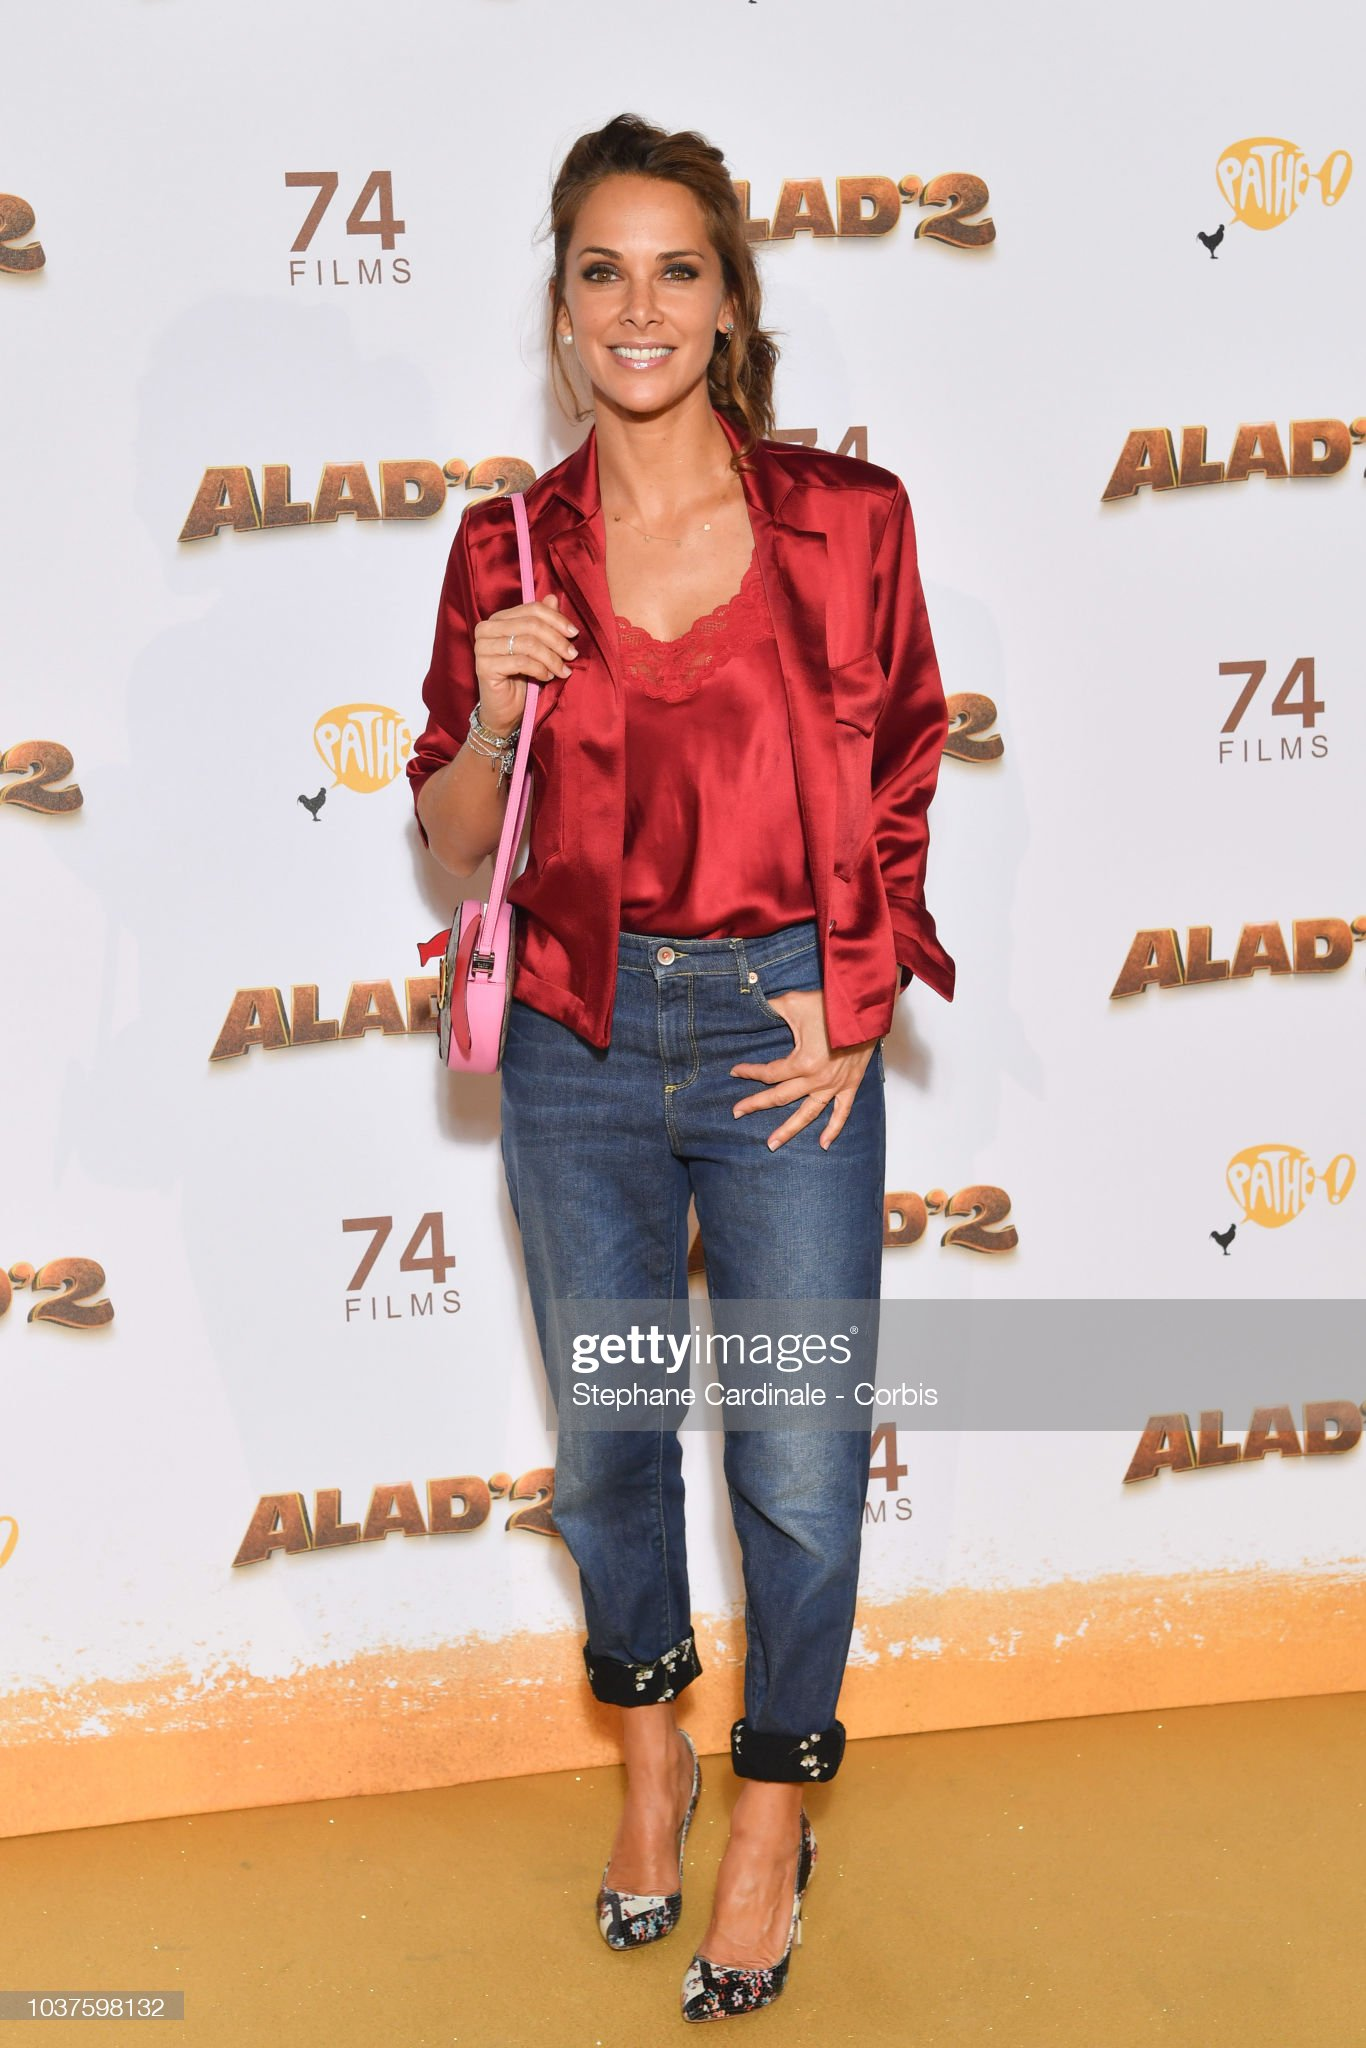 ¿Cuánto mide Melissa Theuriau? - Altura - Real height Melissa-theuriau-attends-alad2-paris-premiere-at-le-grand-rex-on-21-picture-id1037598132?s=2048x2048